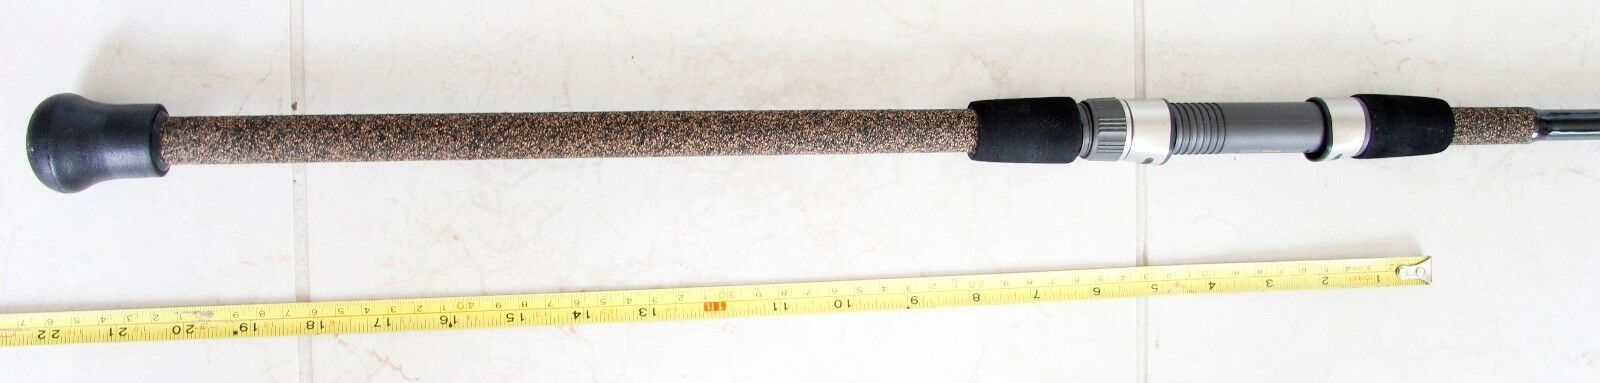 1-PC 8' Spinning Surf Rod with Fuji Components -  99.99 Value of  200 (New)